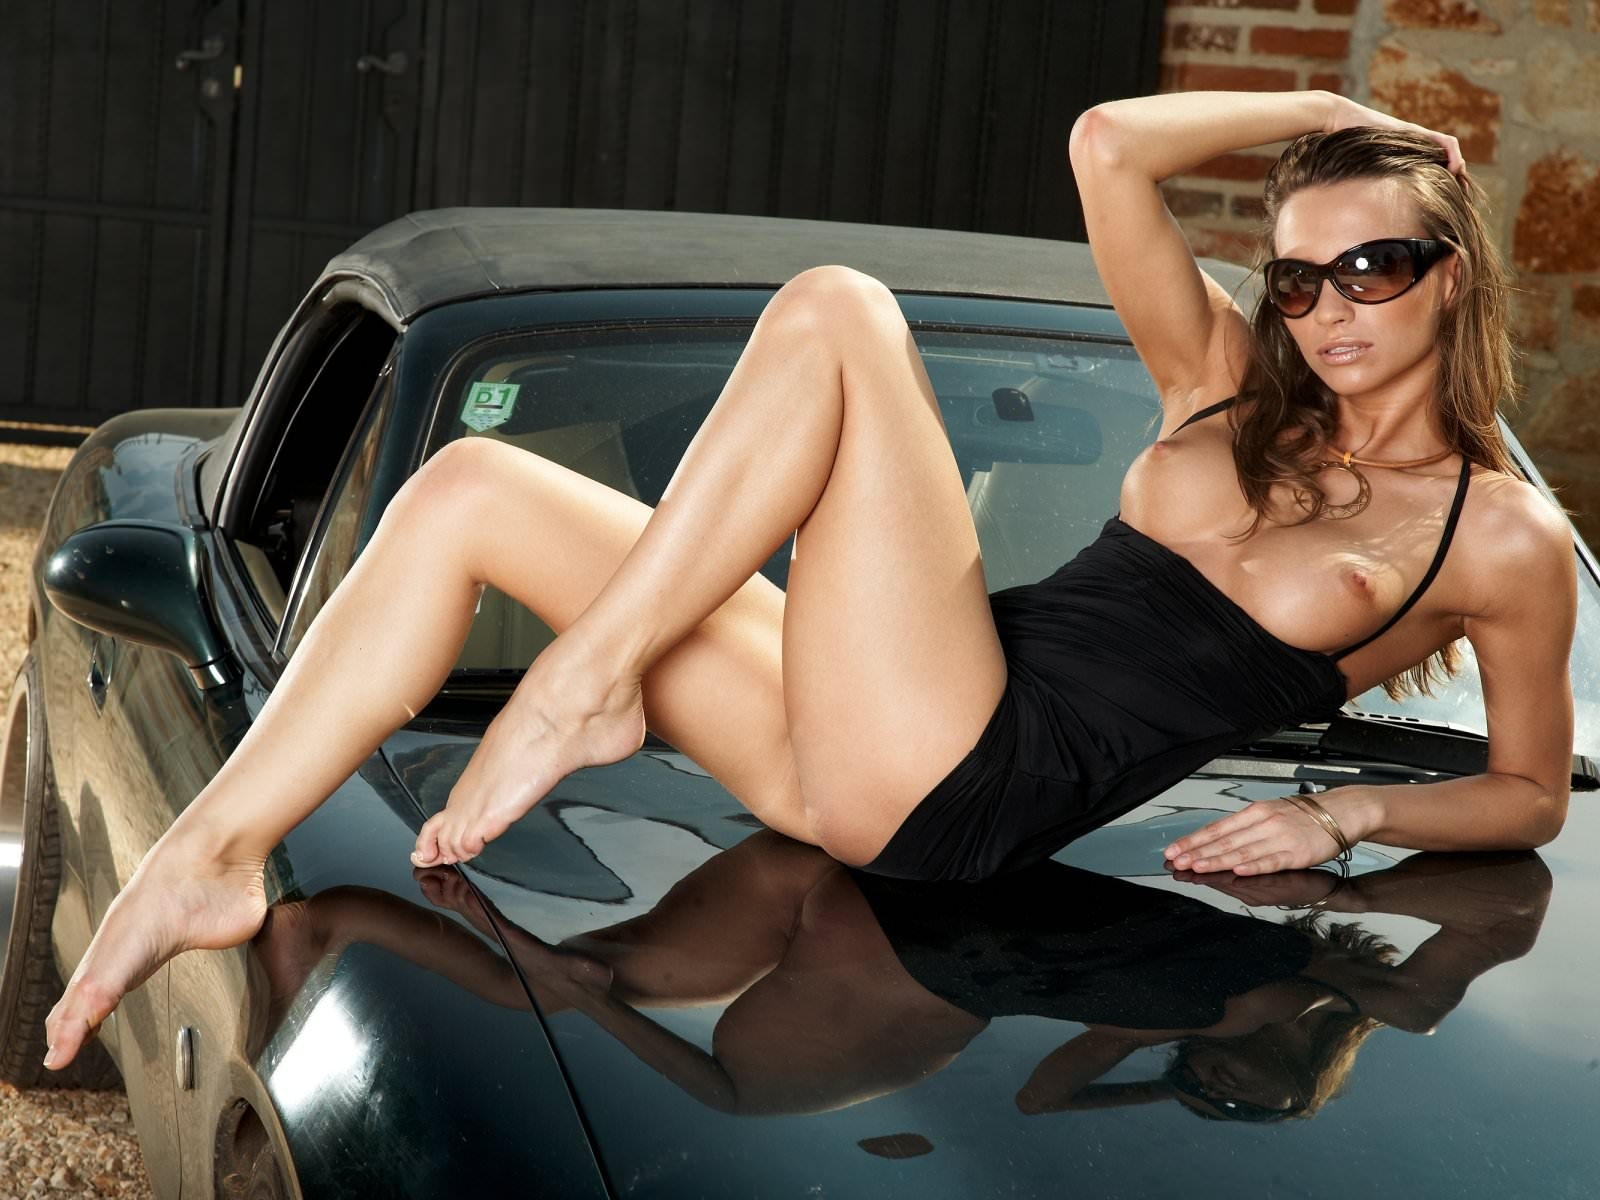 Auto Erotic Asphyxiation Pics